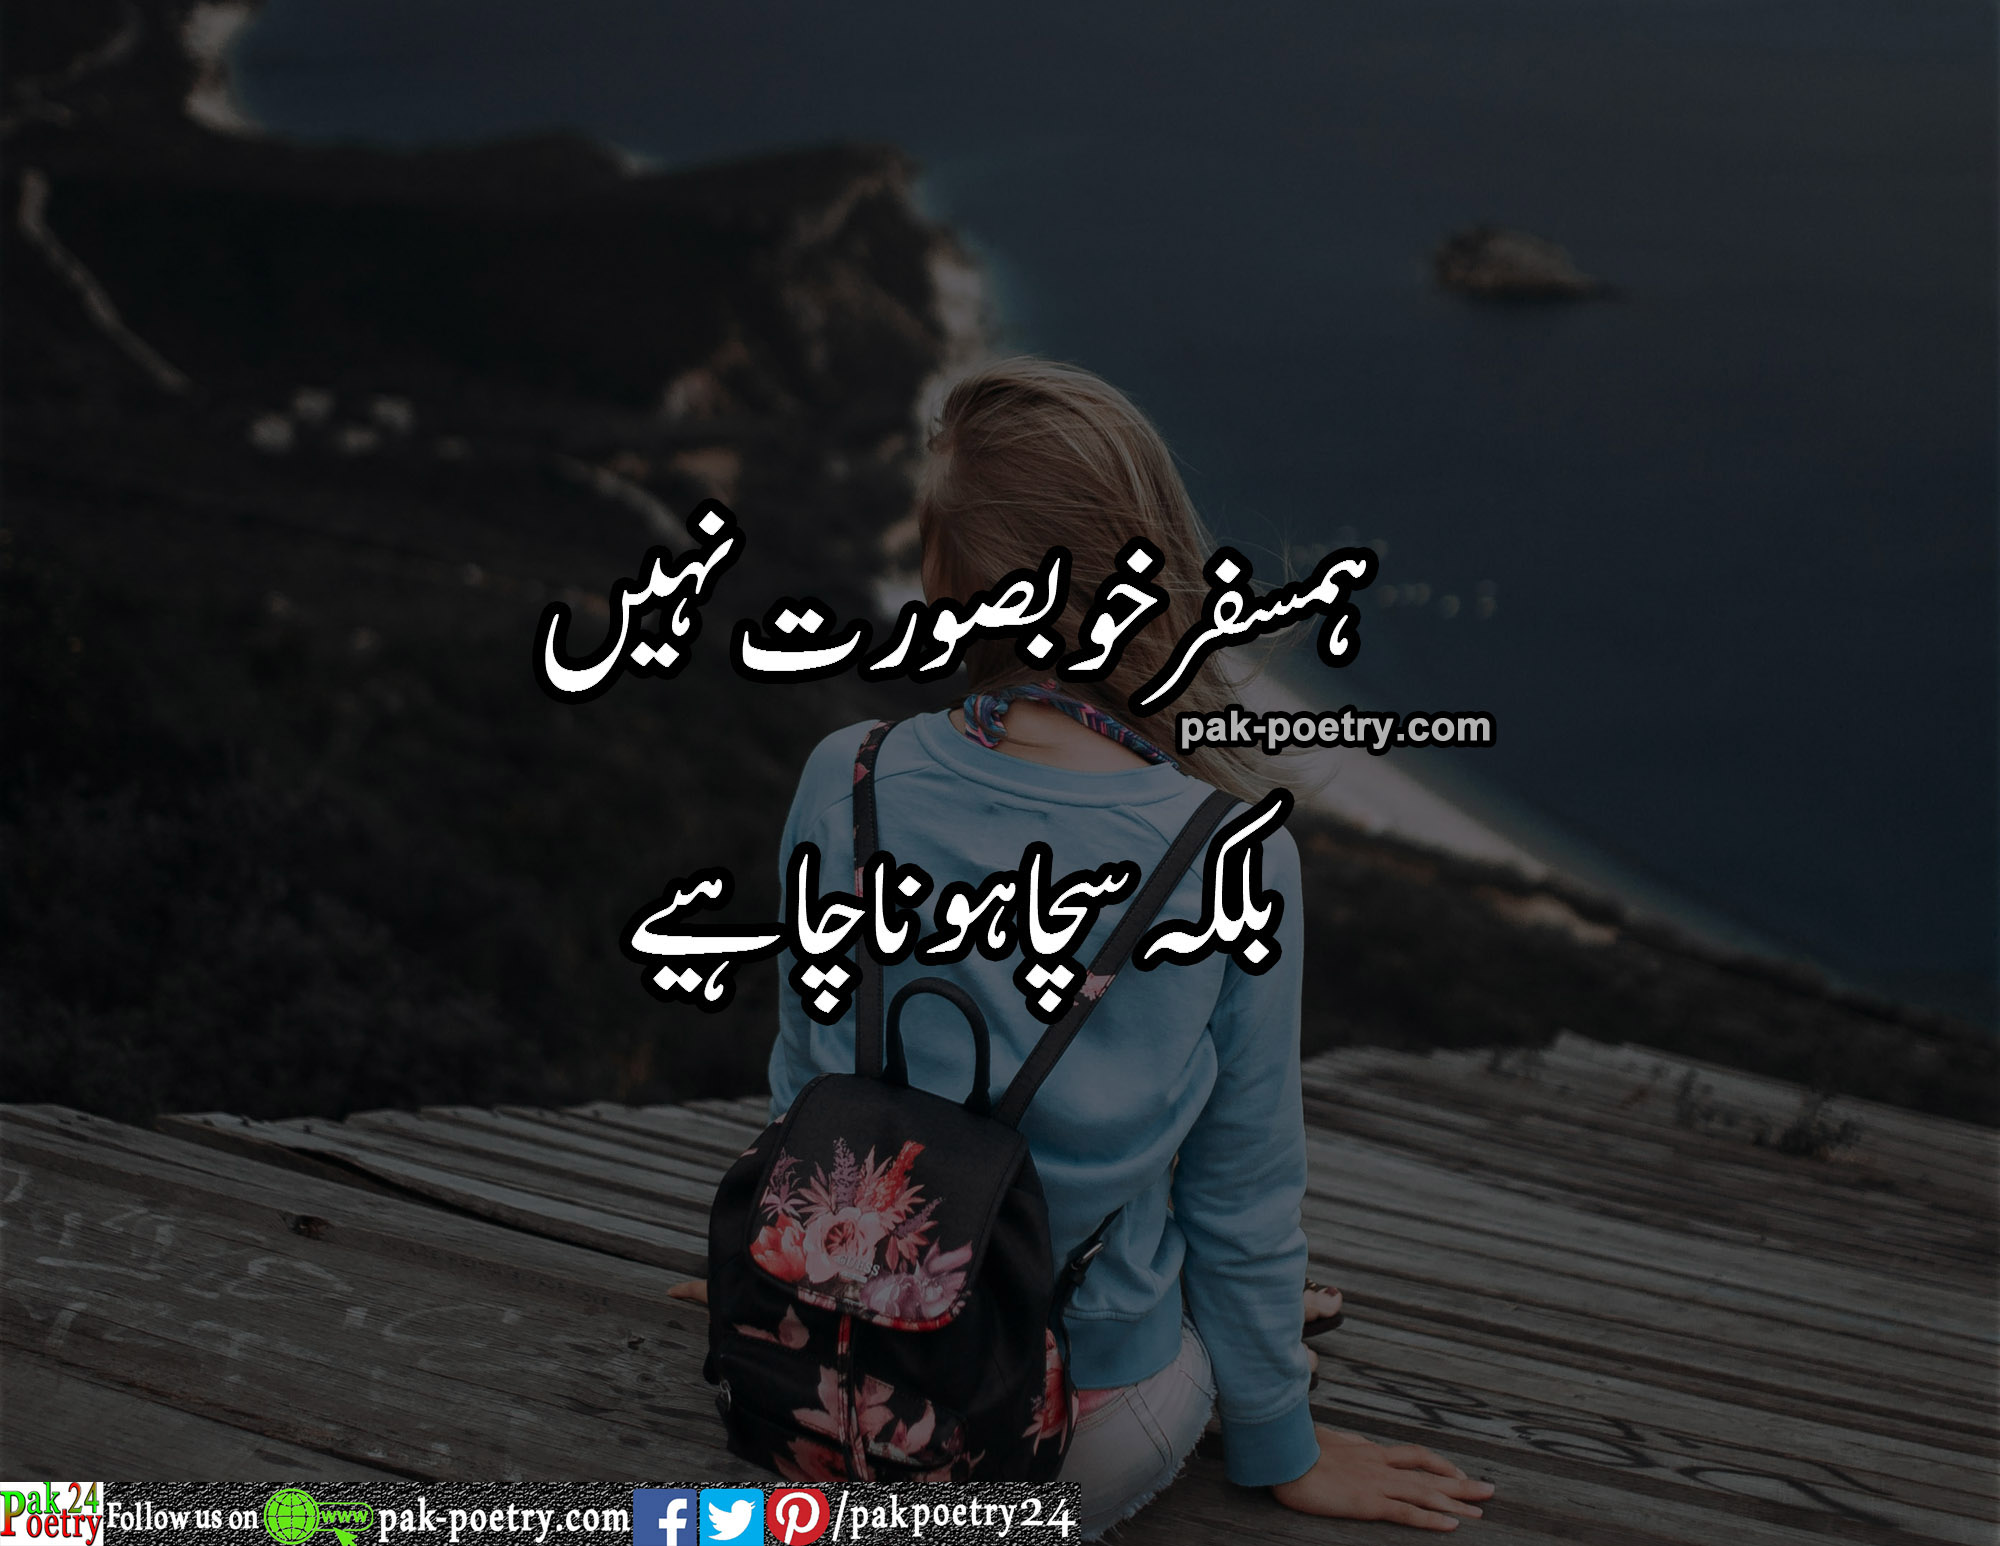 reality quotes, reality poetry in urdu, reality poetry, quotes about reality in urdu, poetry about reality in urdu, sad reality, poetry reality, poetry on reality, reality best poetry urdu, sad reality poetry in urdu, reality based poetry in urdu, poetry about reality, reality, Poetry in urdu, urdu poetry, poetry urdu,